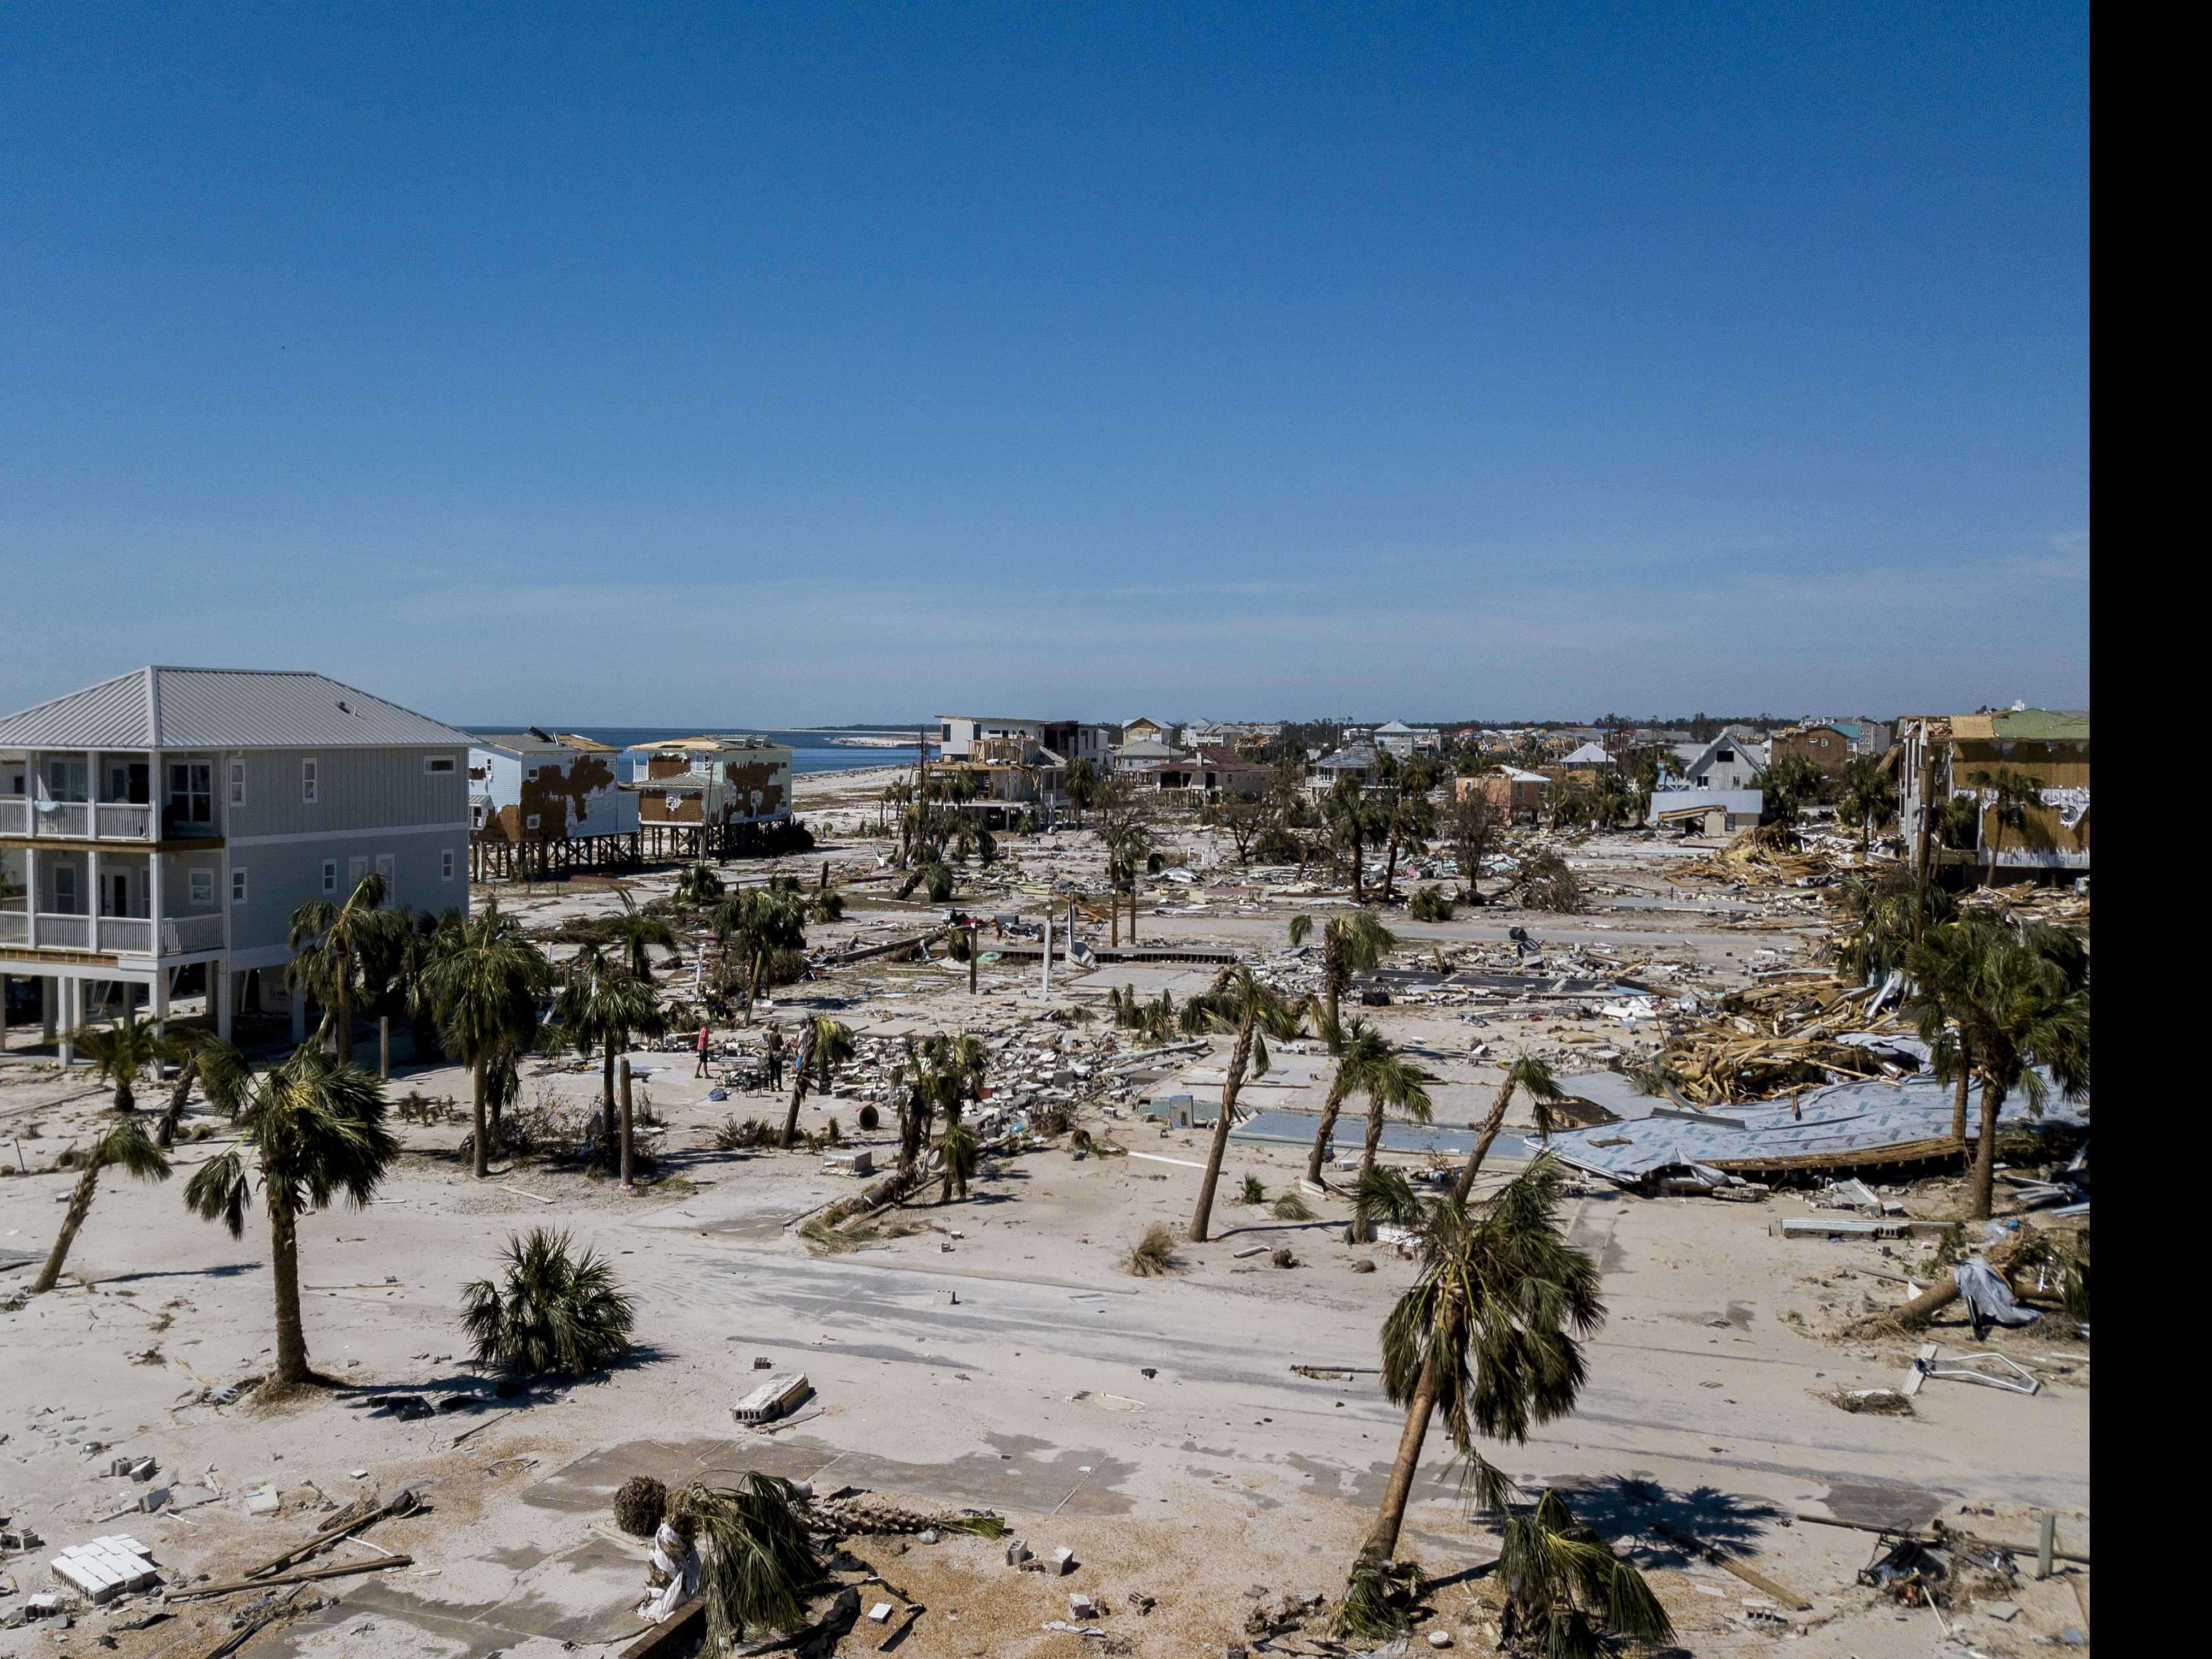 Florida Insurers to Weather Effects of Michael, Analysts Say